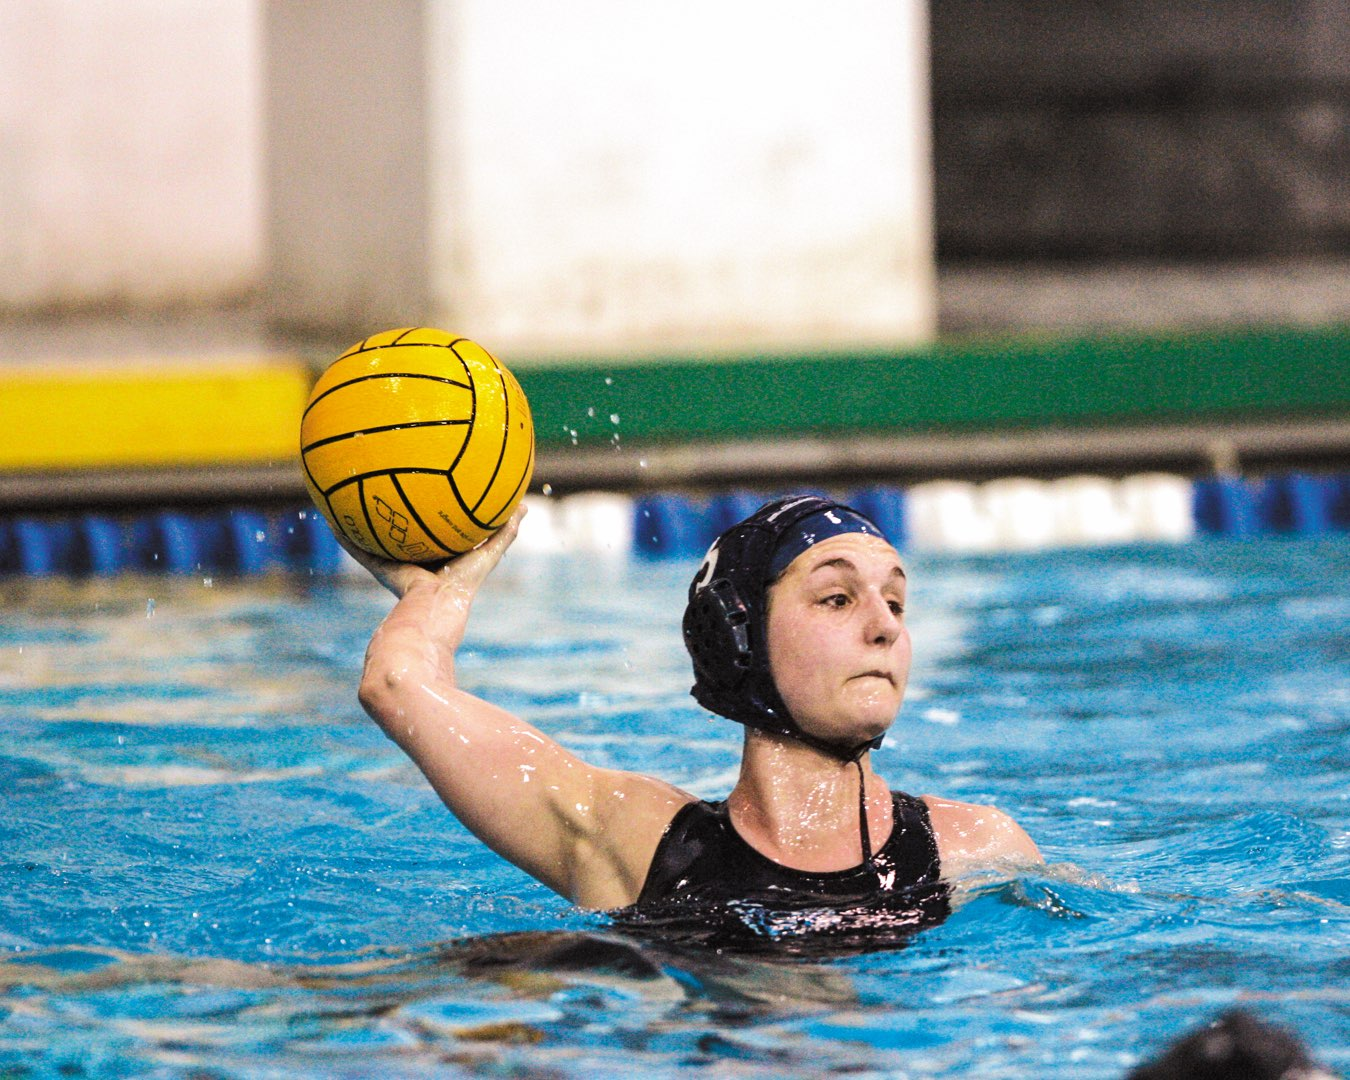 Villanova Women's Water Polo player in her swim in the pool about to launch the bright yellow water polo ball